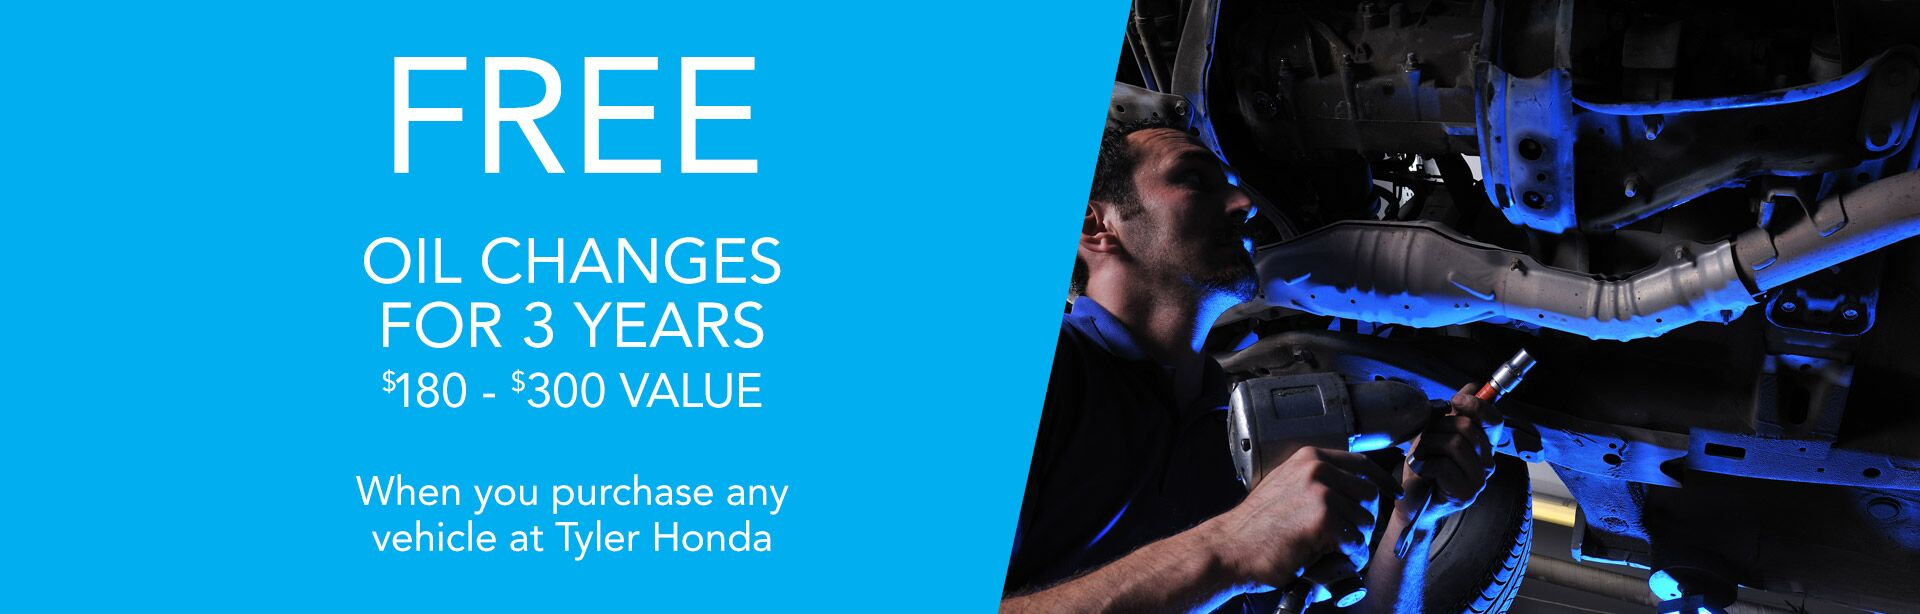 Free oil change for 3 years